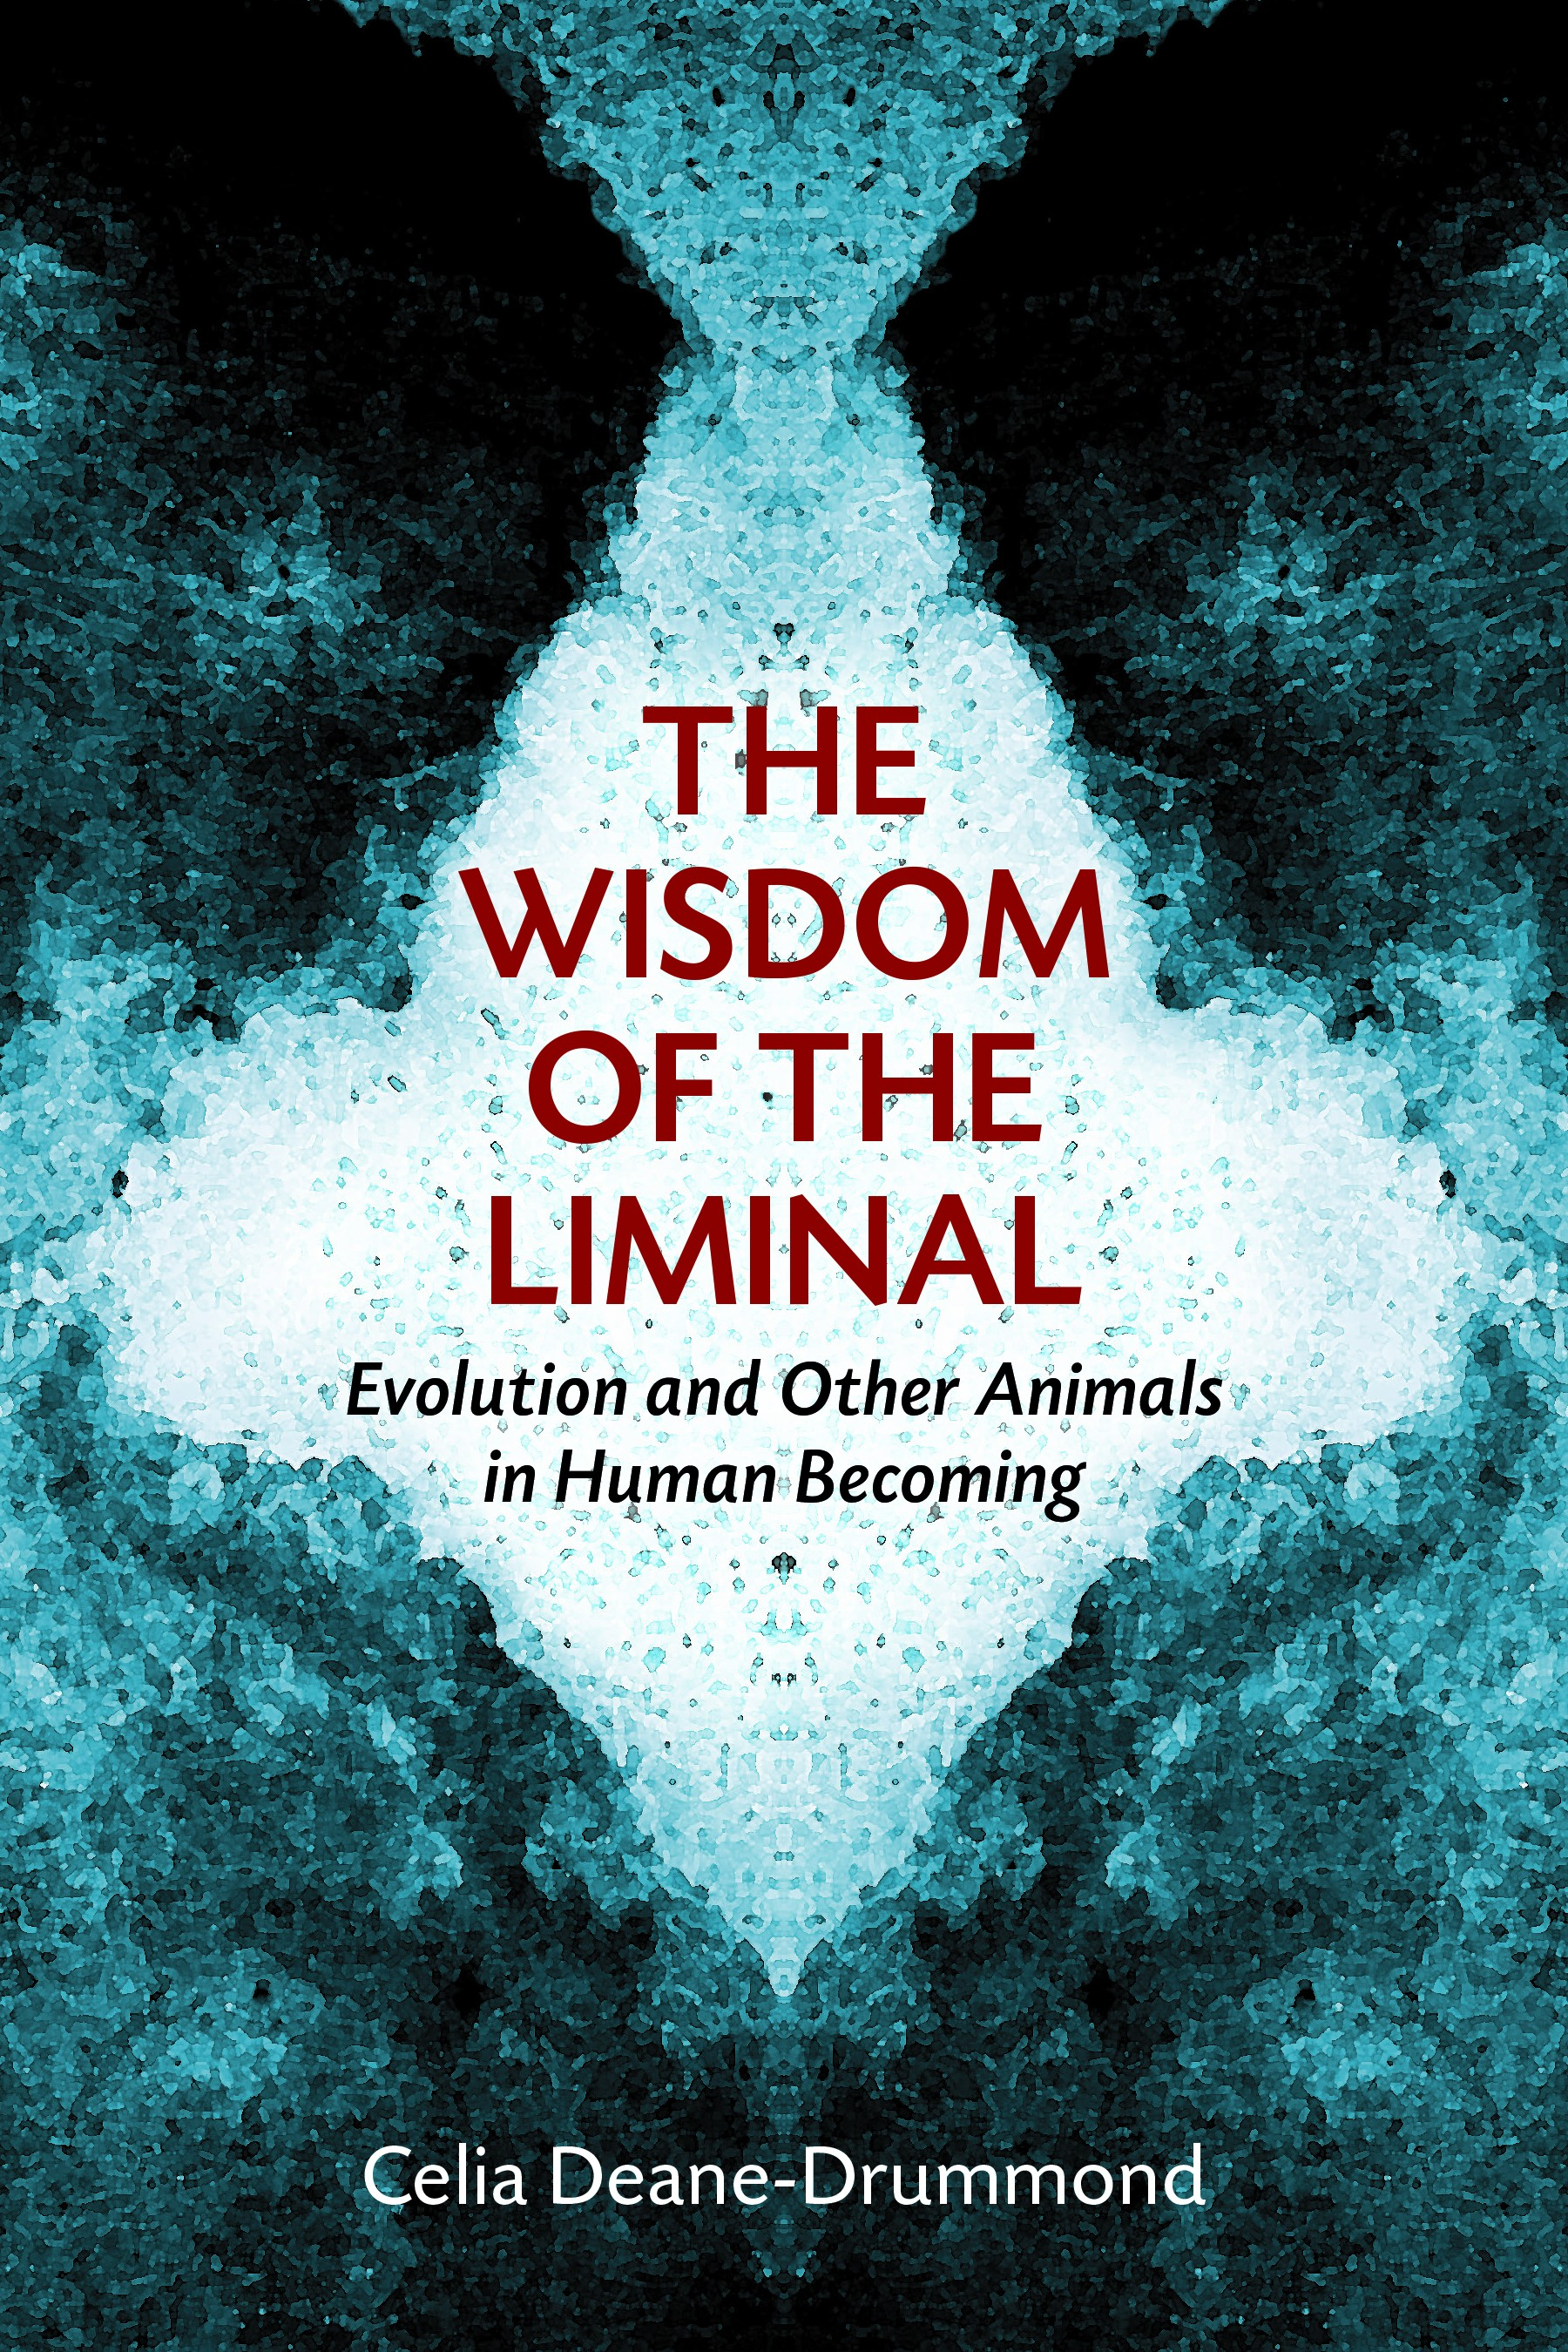 Image result for celia deane-drummond the wisdom of the liminal